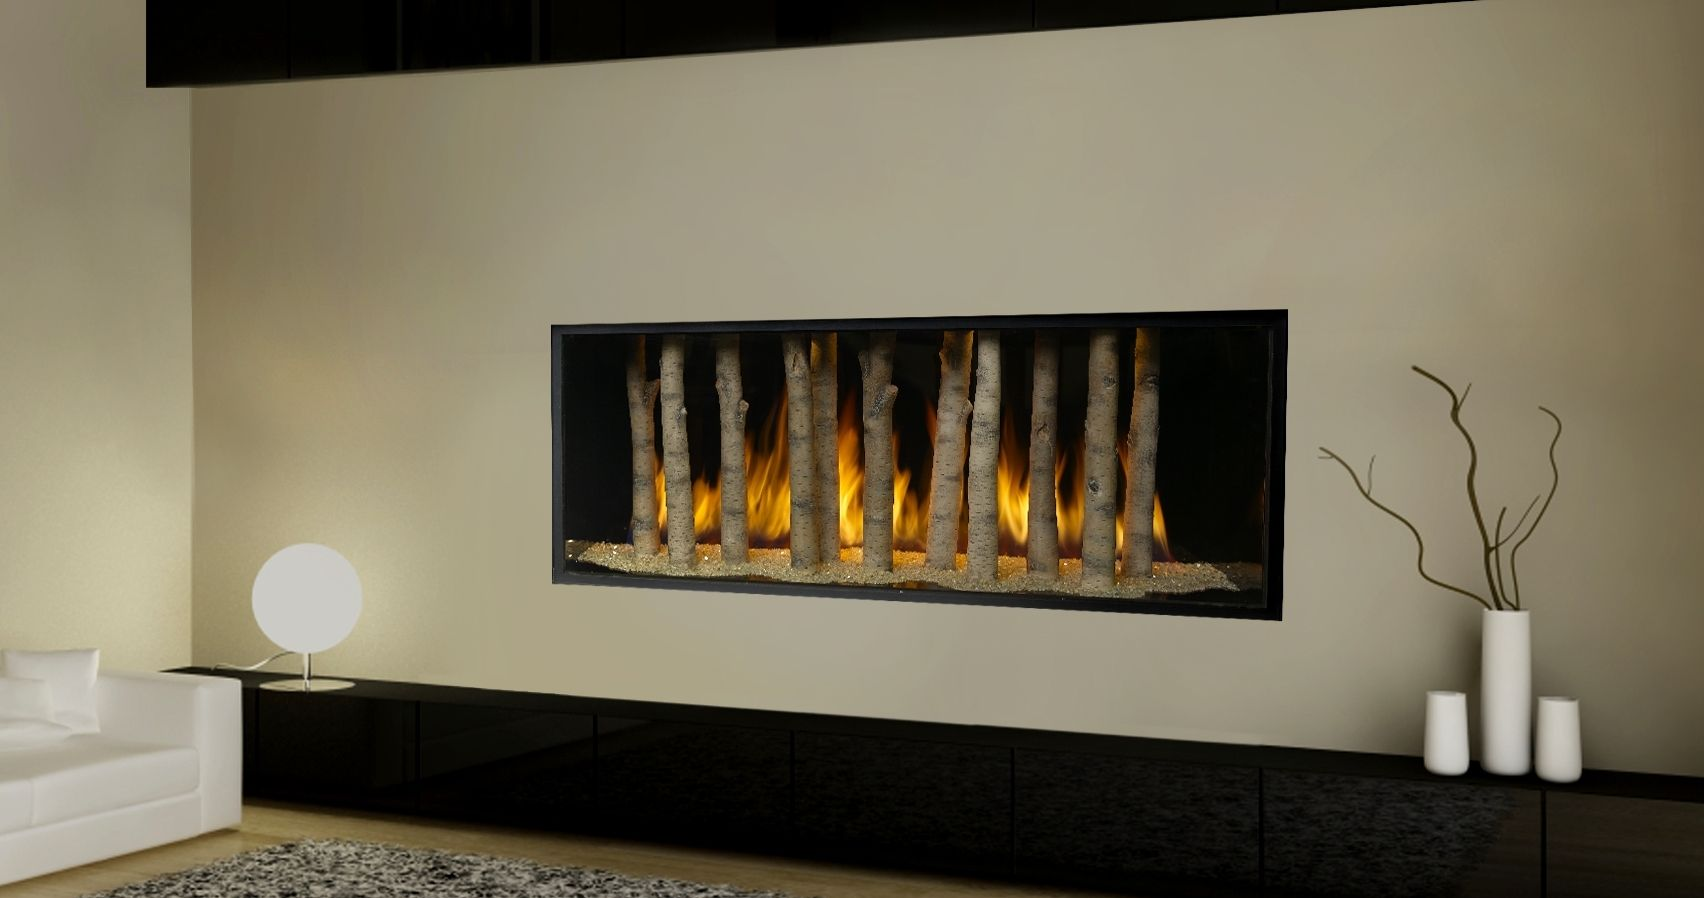 Gas Fireplace Design Ideas small gas fireplace design ideas this will work great in our space Unique Gas Fireplace Design Ideas With Creative Fireplace Cover